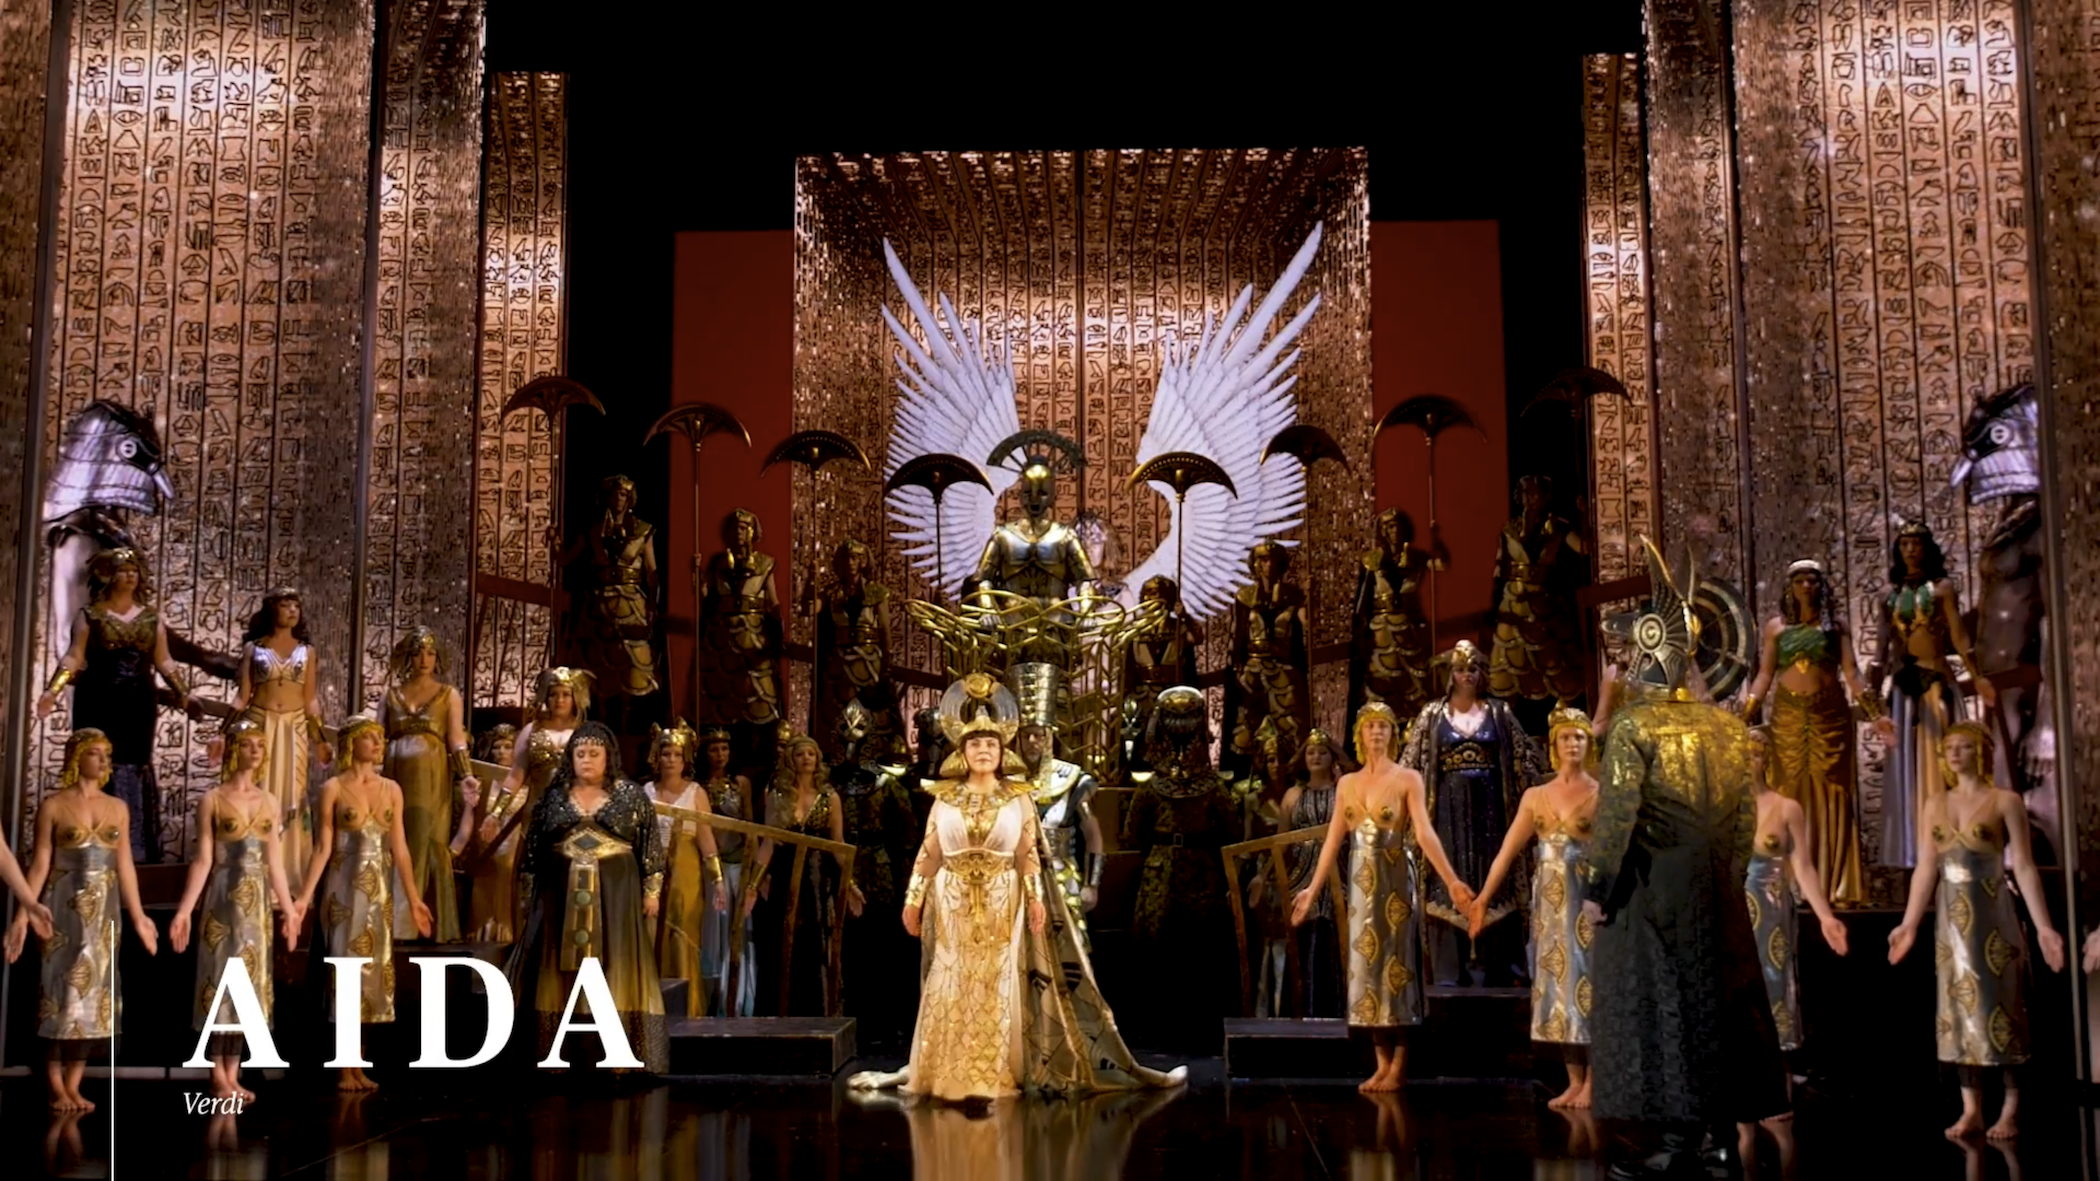 Left: The baritone Michael Honeyman dreadlocked and brown-faced as the King of Ethiopia in Opera Australia's production of Verdi's 'Aida' for the Handa Opera, Sydney Harbour, 2015. Right: Honeyman as the Consul of America in Opera Australia's production of Puccini's 'Madama Butterfly' for the Handa Opera, Sydney Harbour, 2014.